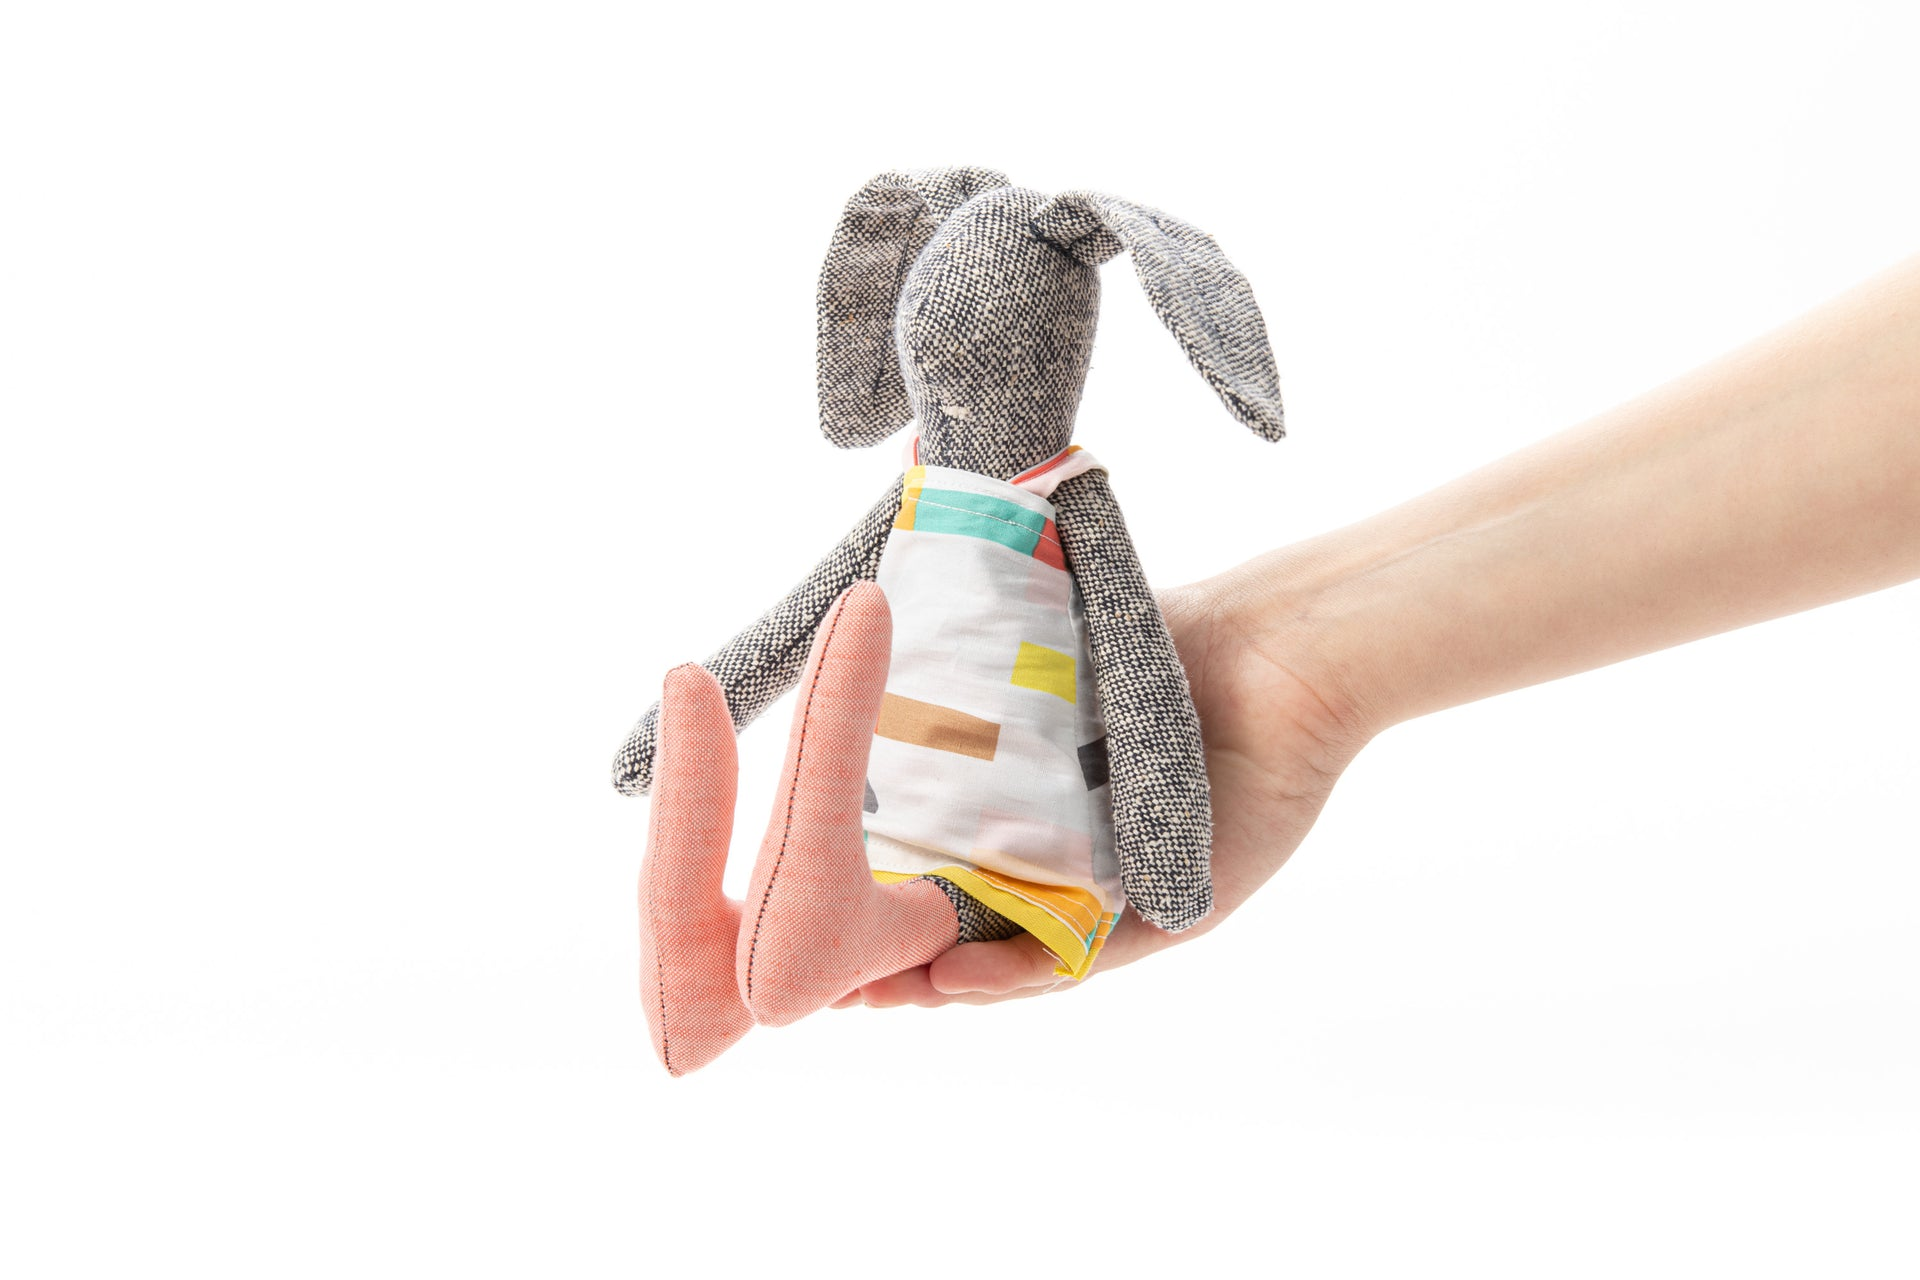 Handmade bunny Fabric doll Baby gift Rabbit doll Stuffed bunny Plush soft toy Knitted silk Cuddly rabbit Softie plush bunny Girl nursery